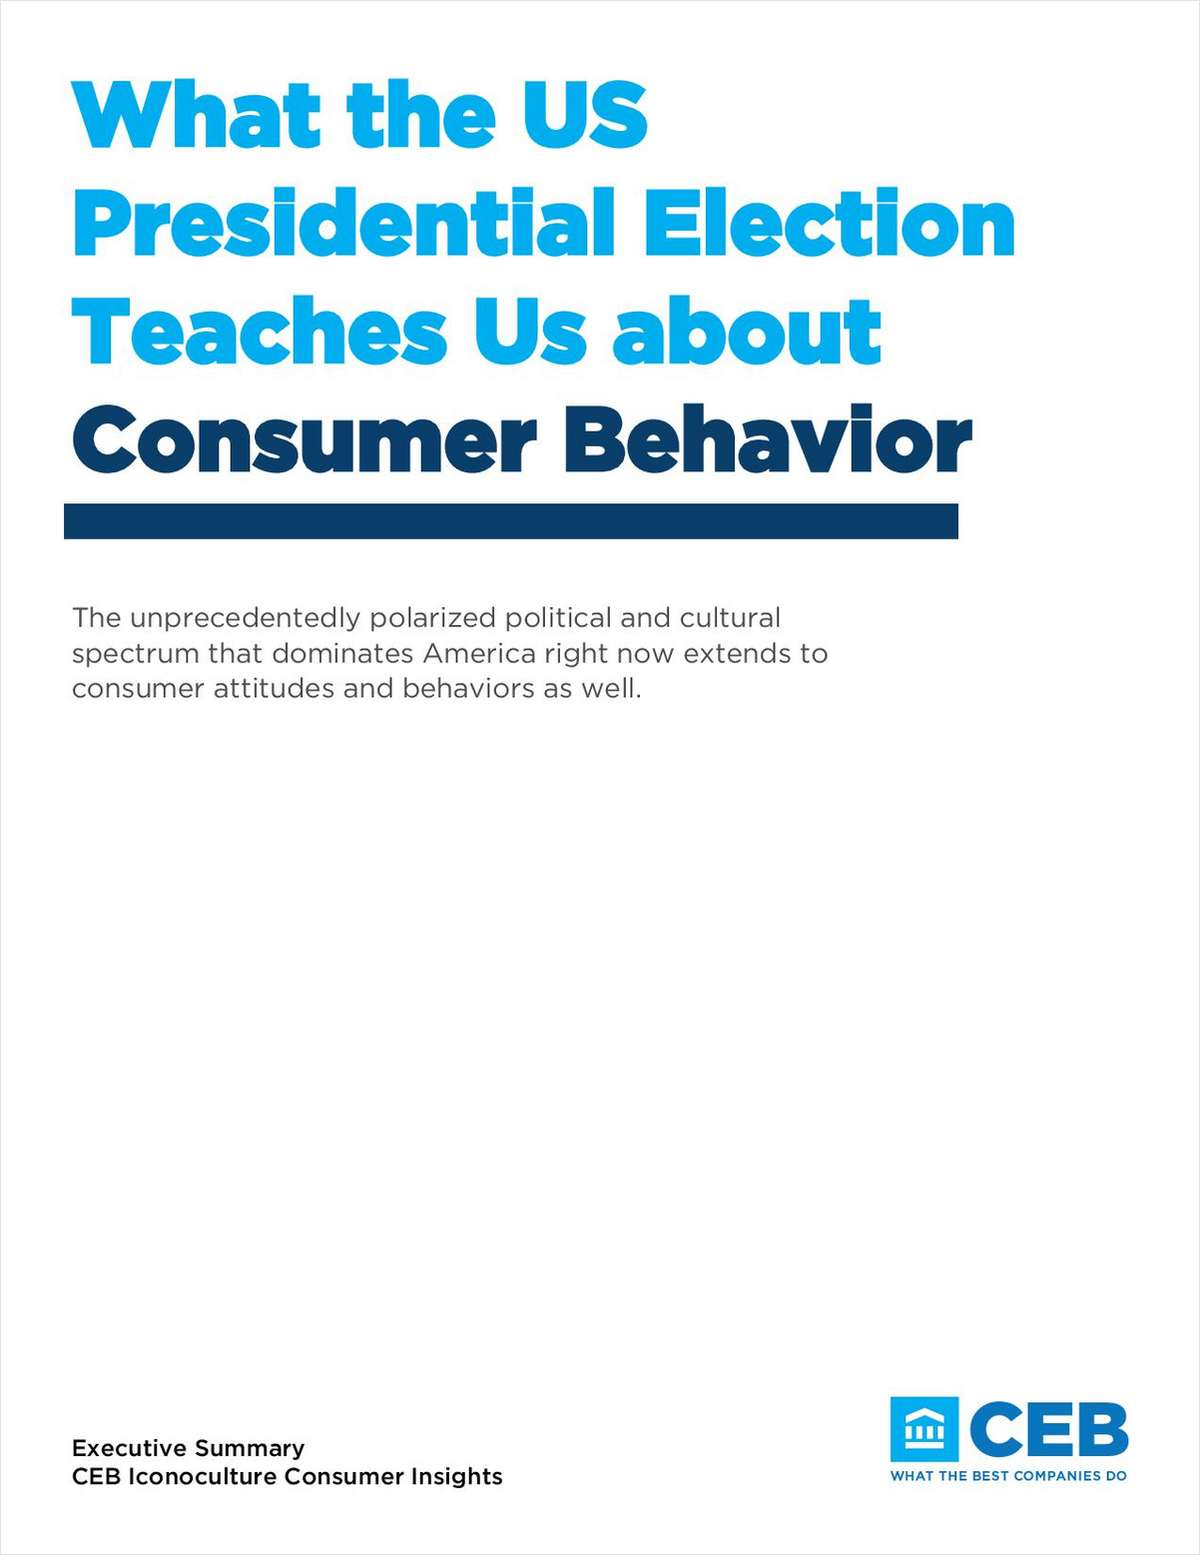 What the US Presidential Election Teaches us About Consumer Behavior